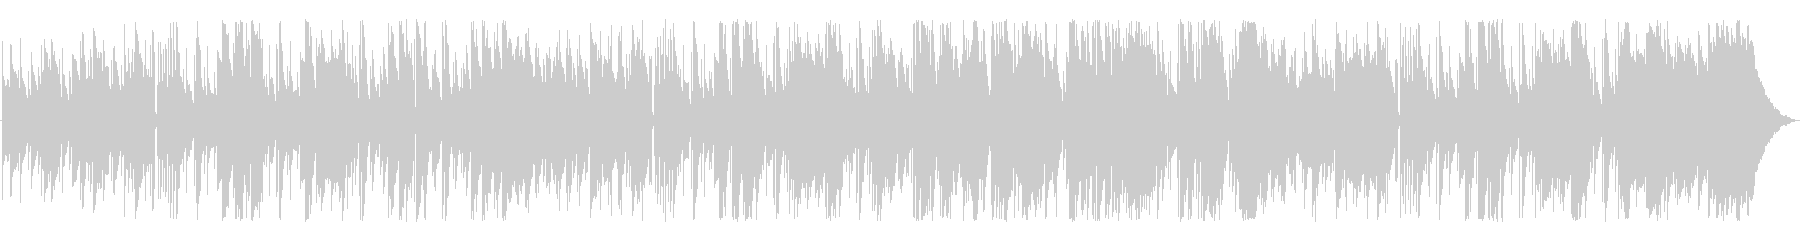 Beads and bangles (sax)'s unreproduced waveform